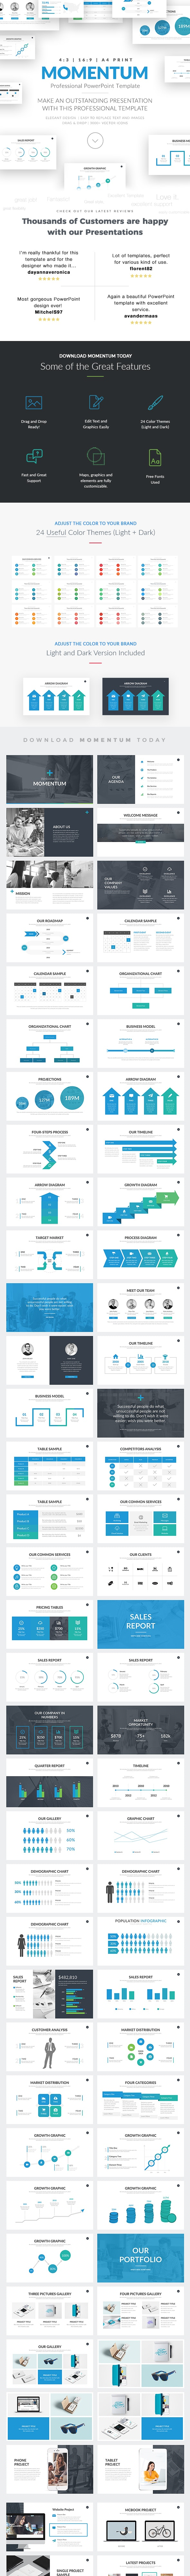 Momentum Professional Business PowerPoint Template - PowerPoint Templates Presentation Templates